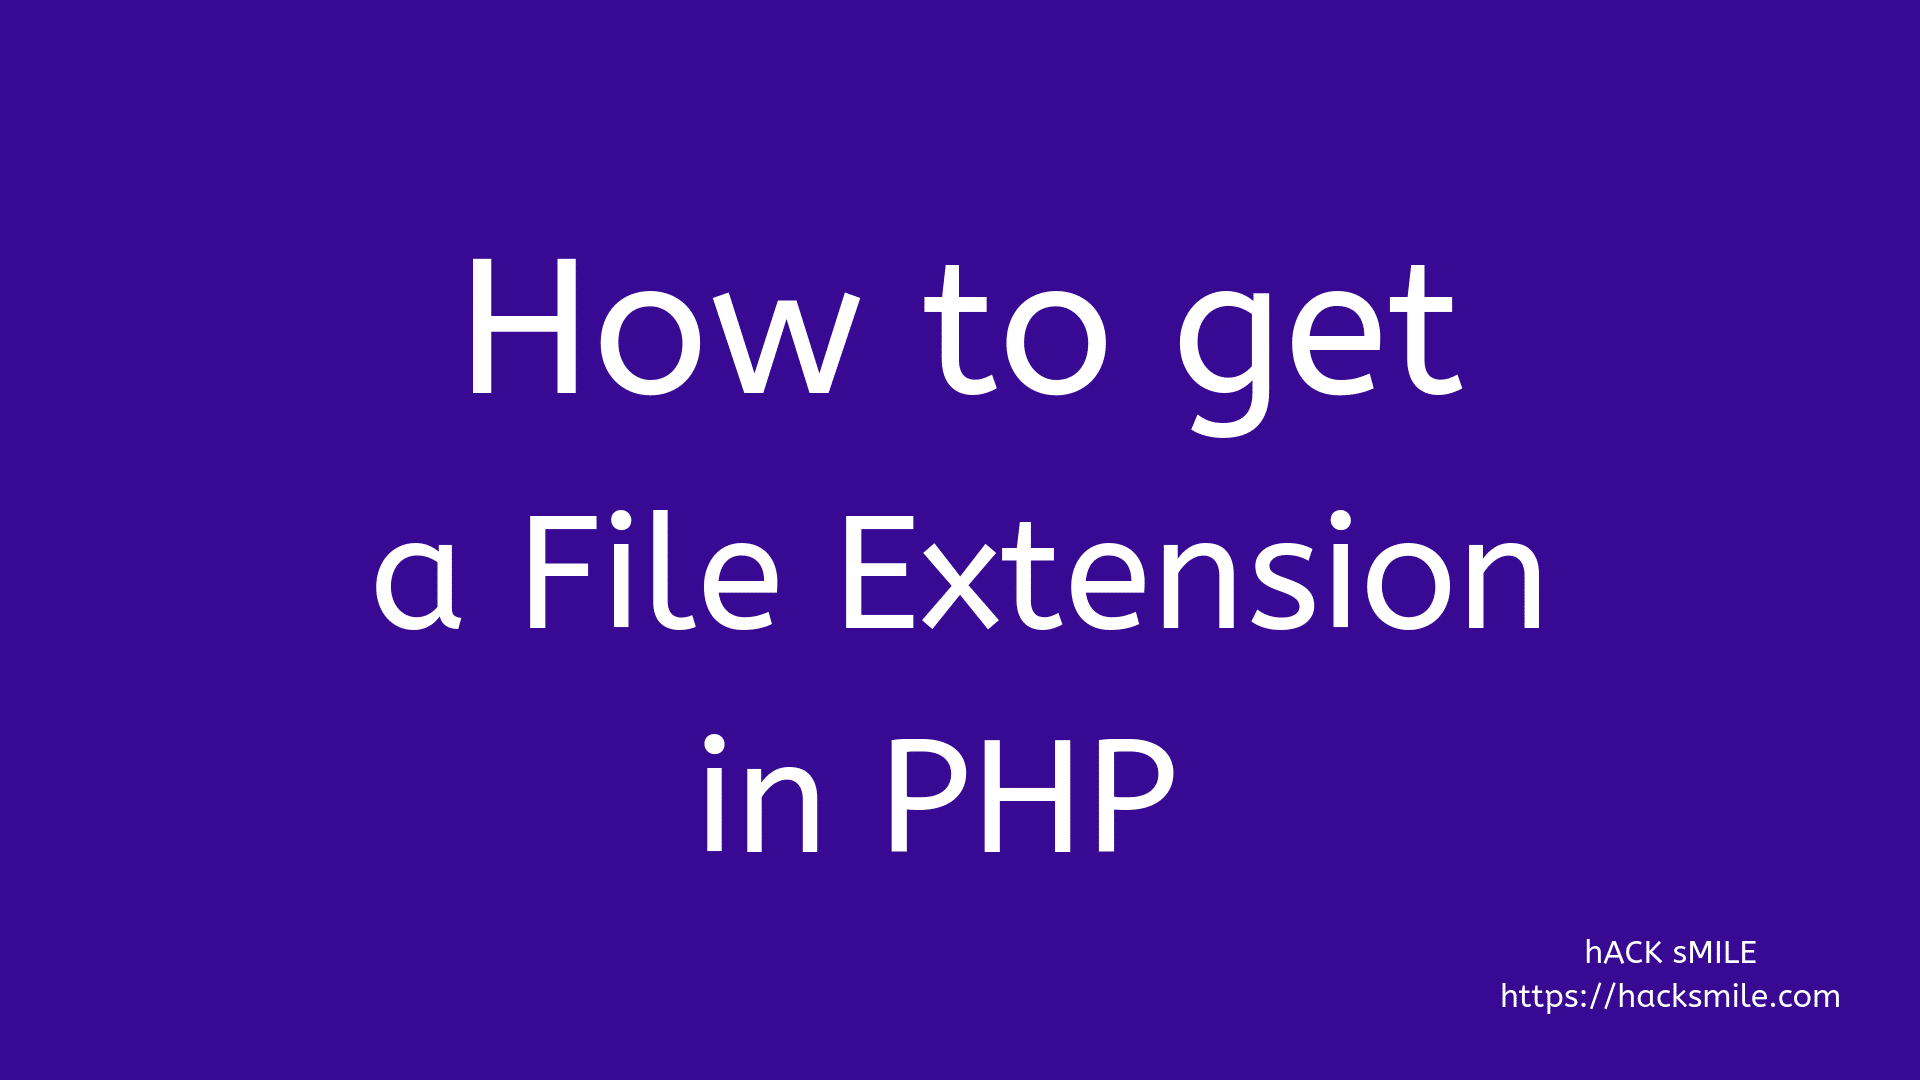 How to get a File Extension in PHP